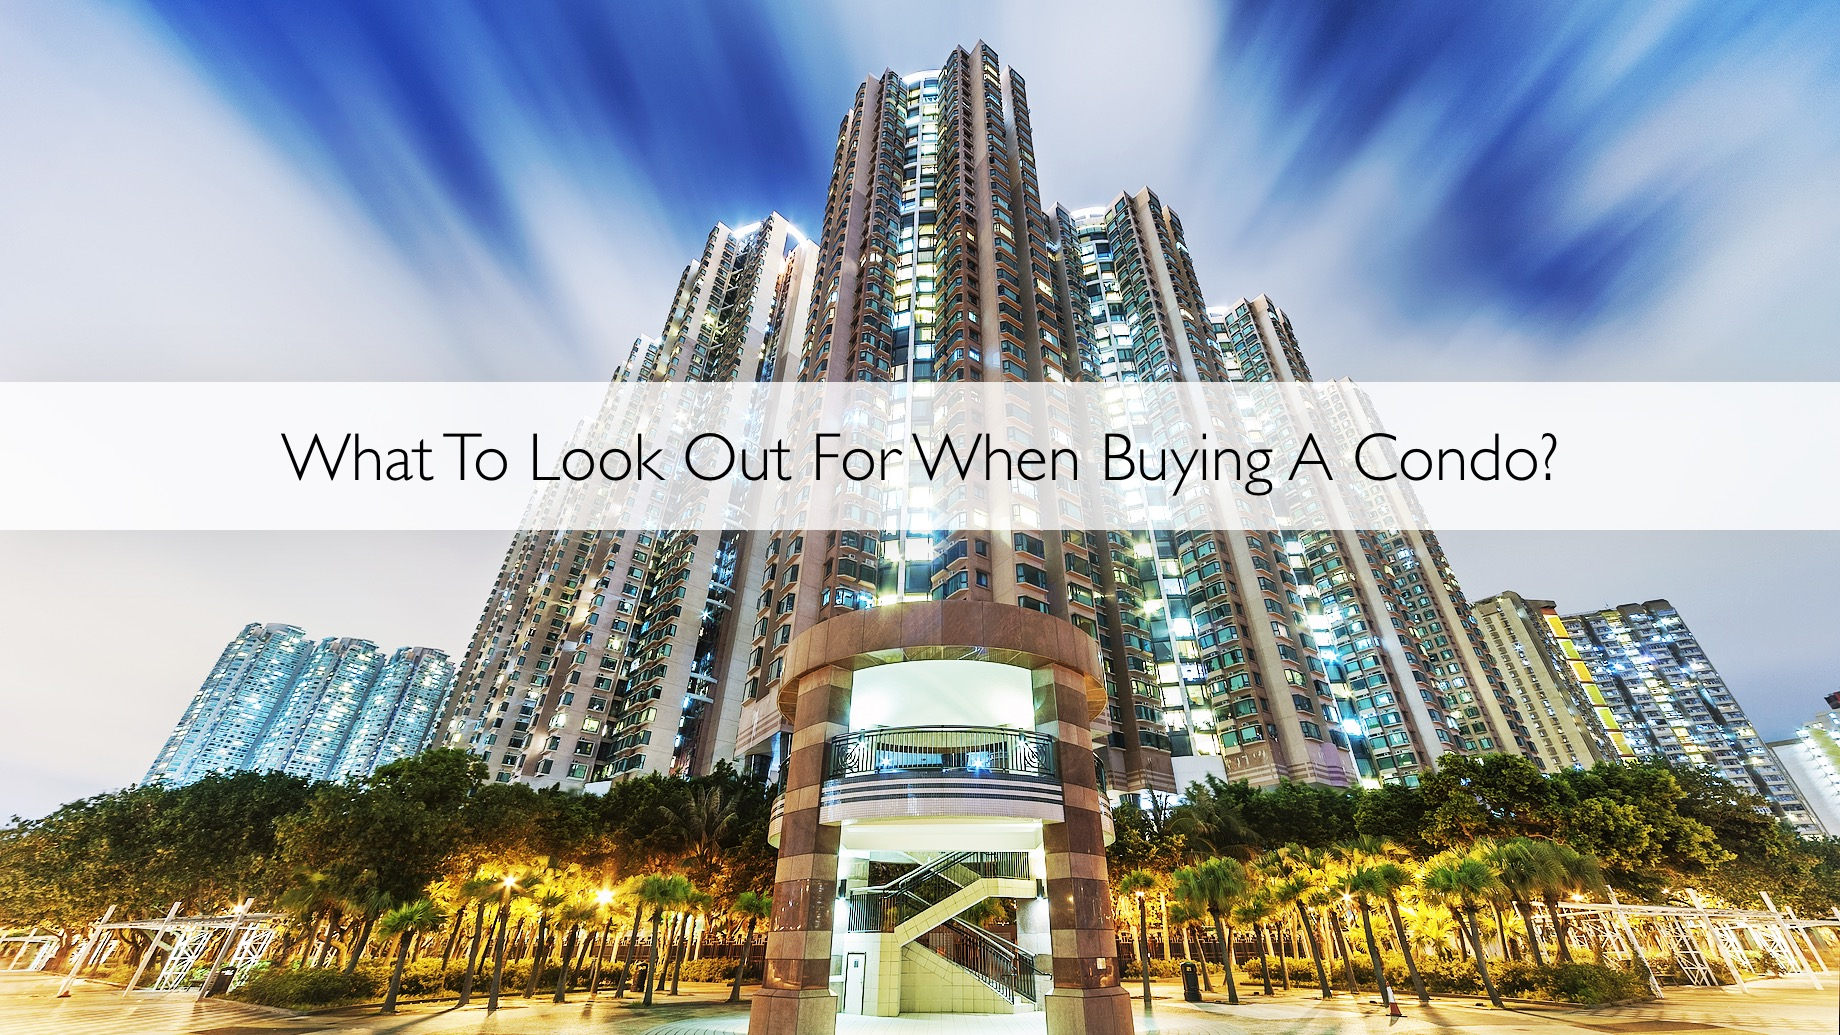 What To Look Out For When Buying A Condo?